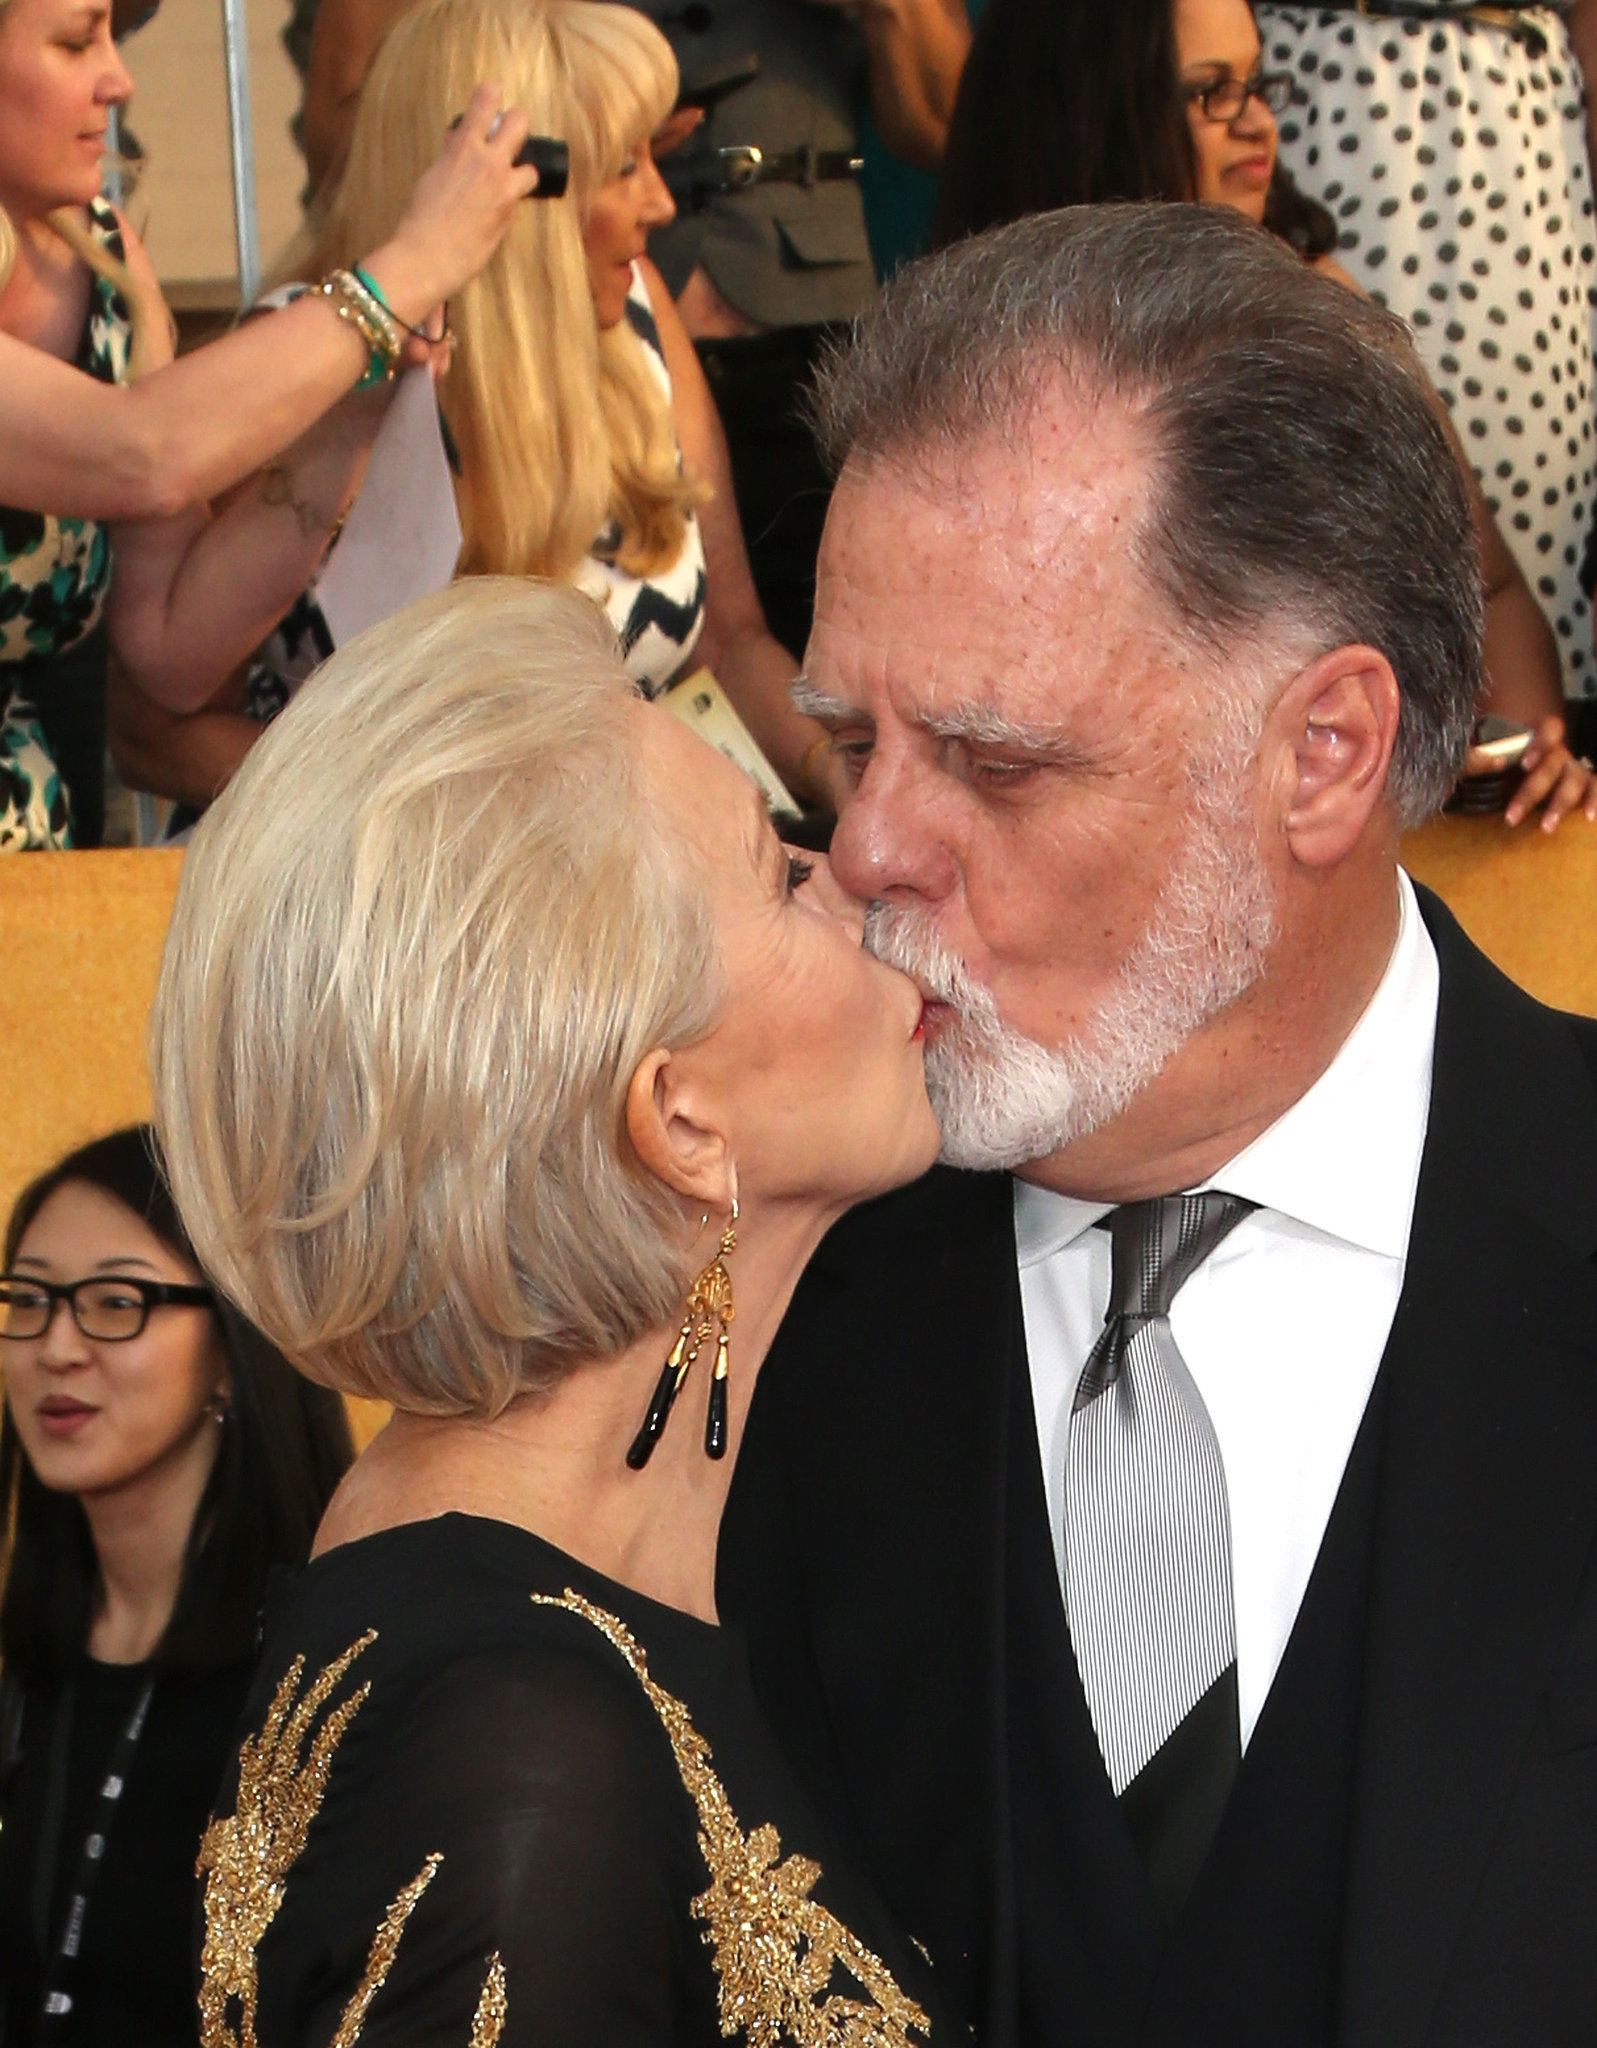 Helen Mirren gave her husband, Taylor Hackford, a kiss while walking the SAG Awards red carpet.